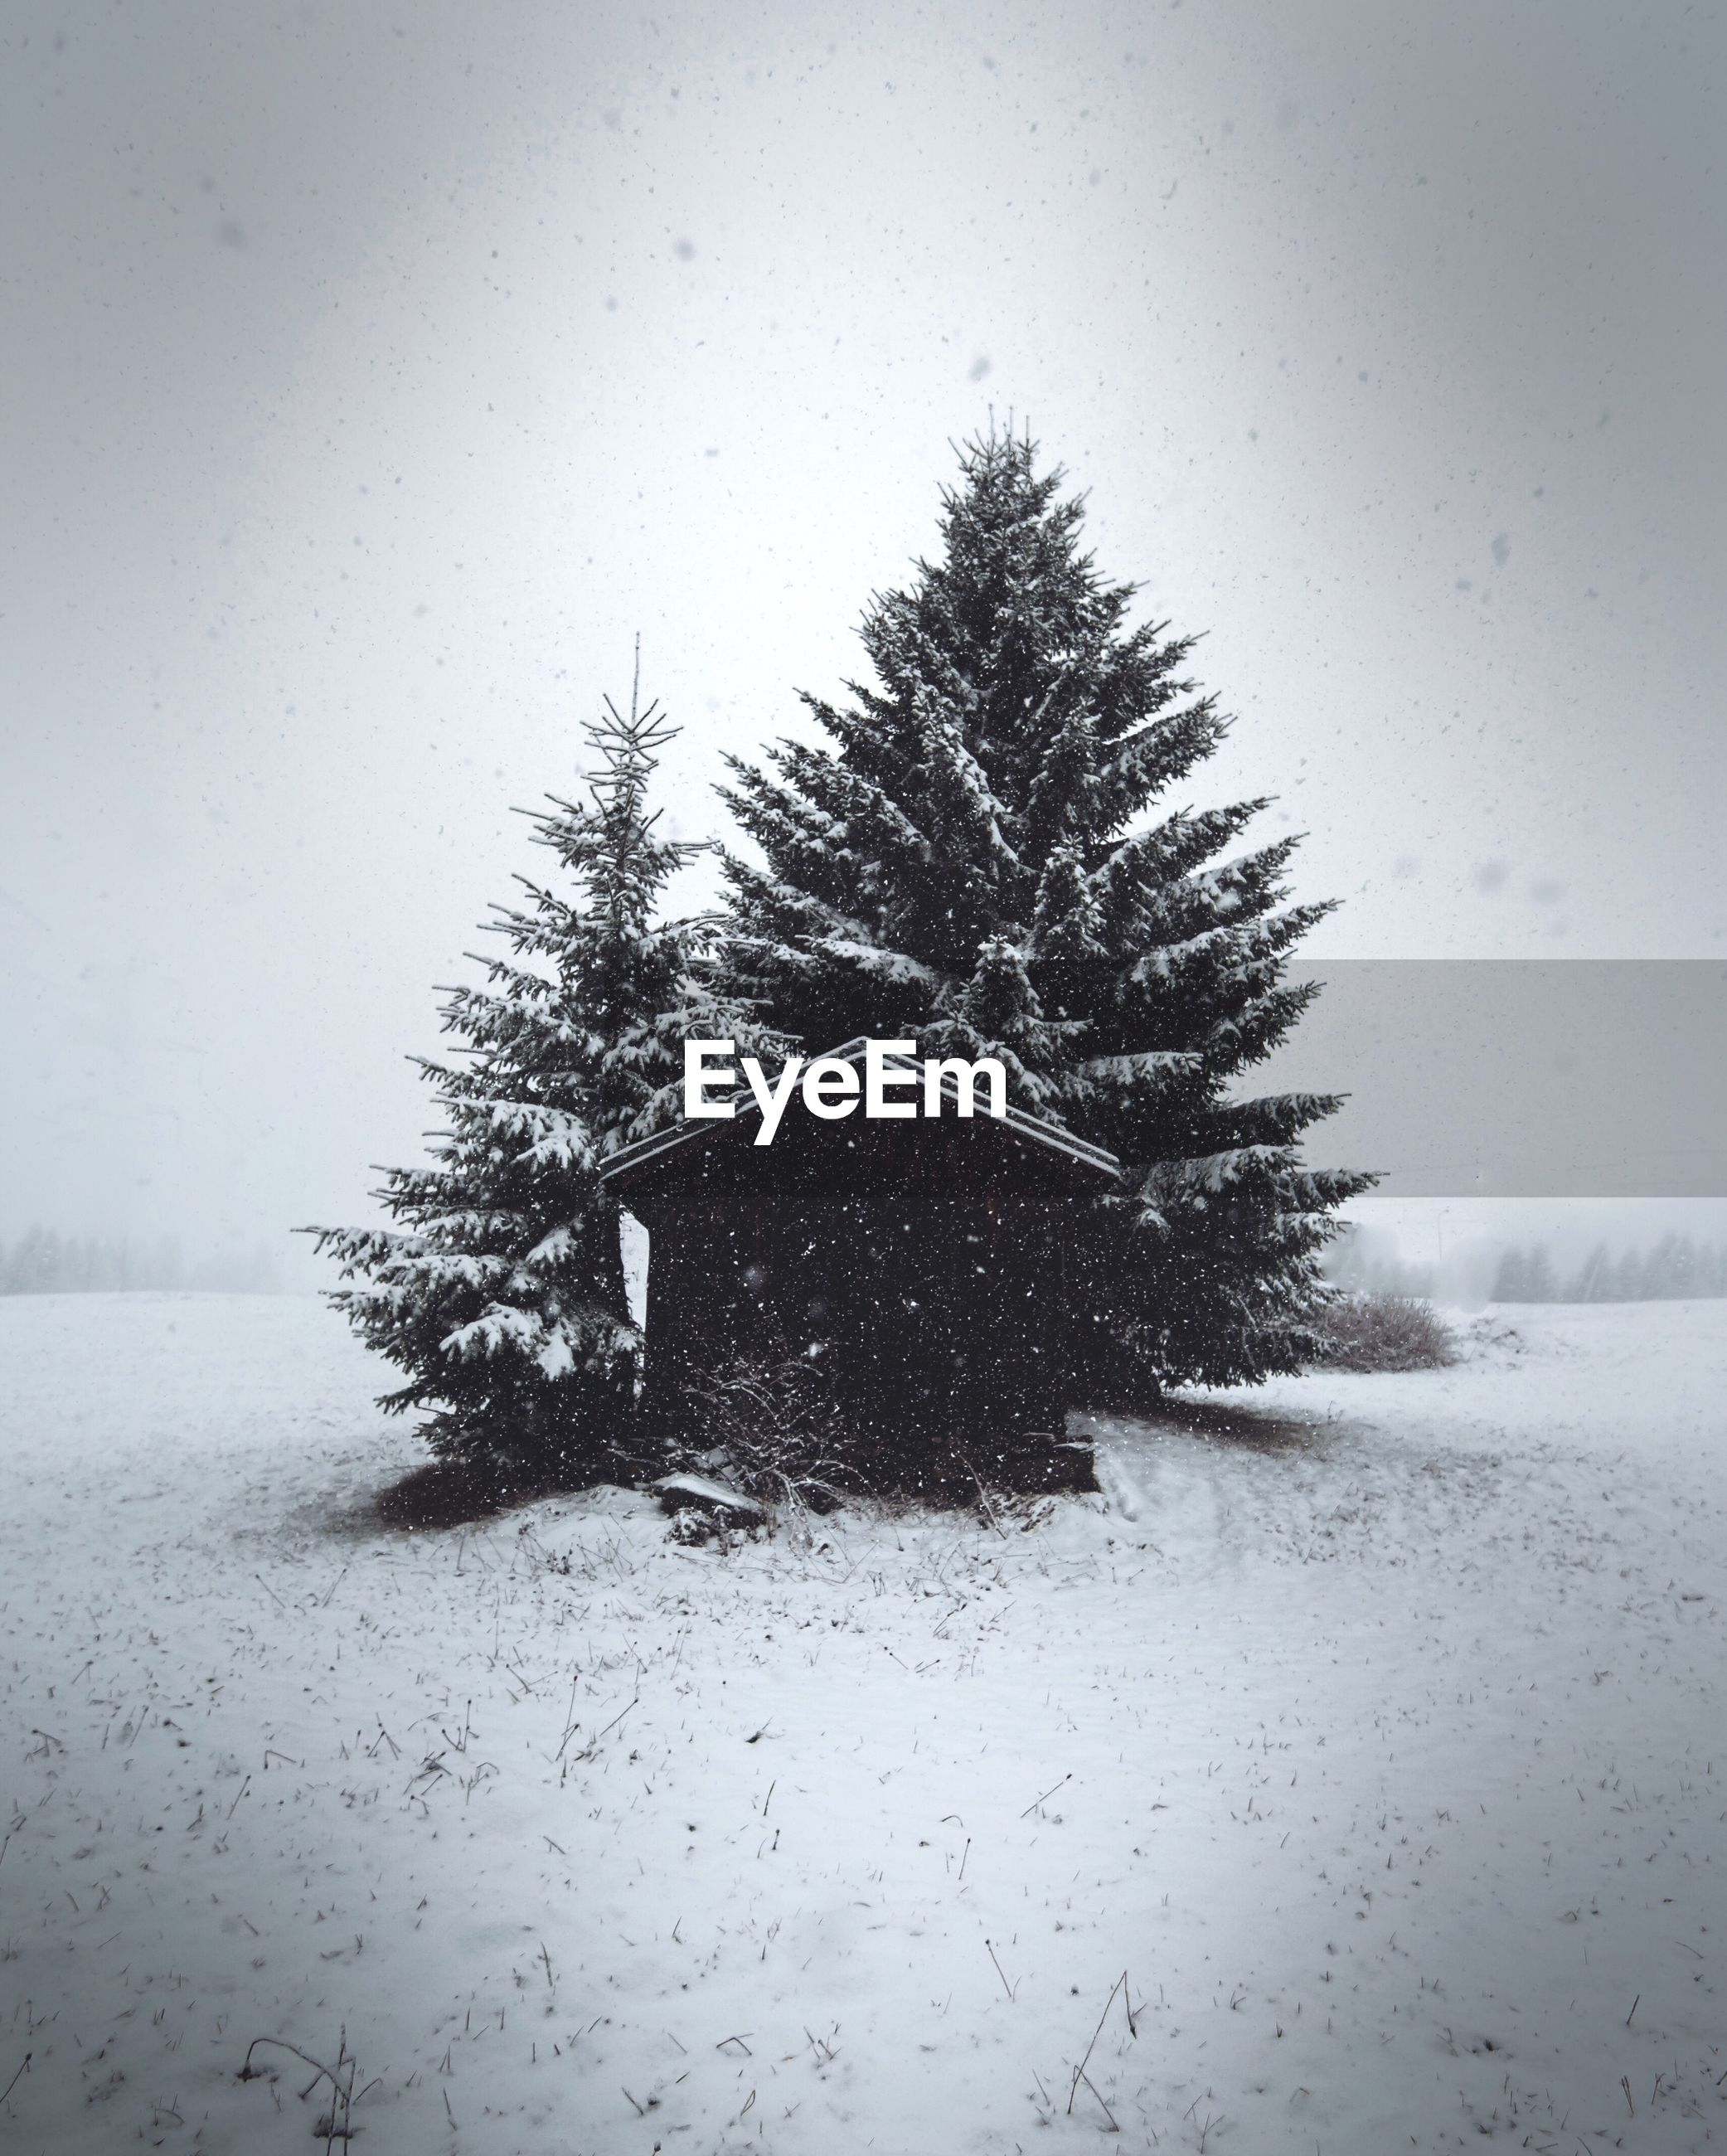 tree, snow, winter, cold temperature, nature, no people, christmas tree, landscape, tranquility, outdoors, beauty in nature, snowing, christmas, day, sky, close-up